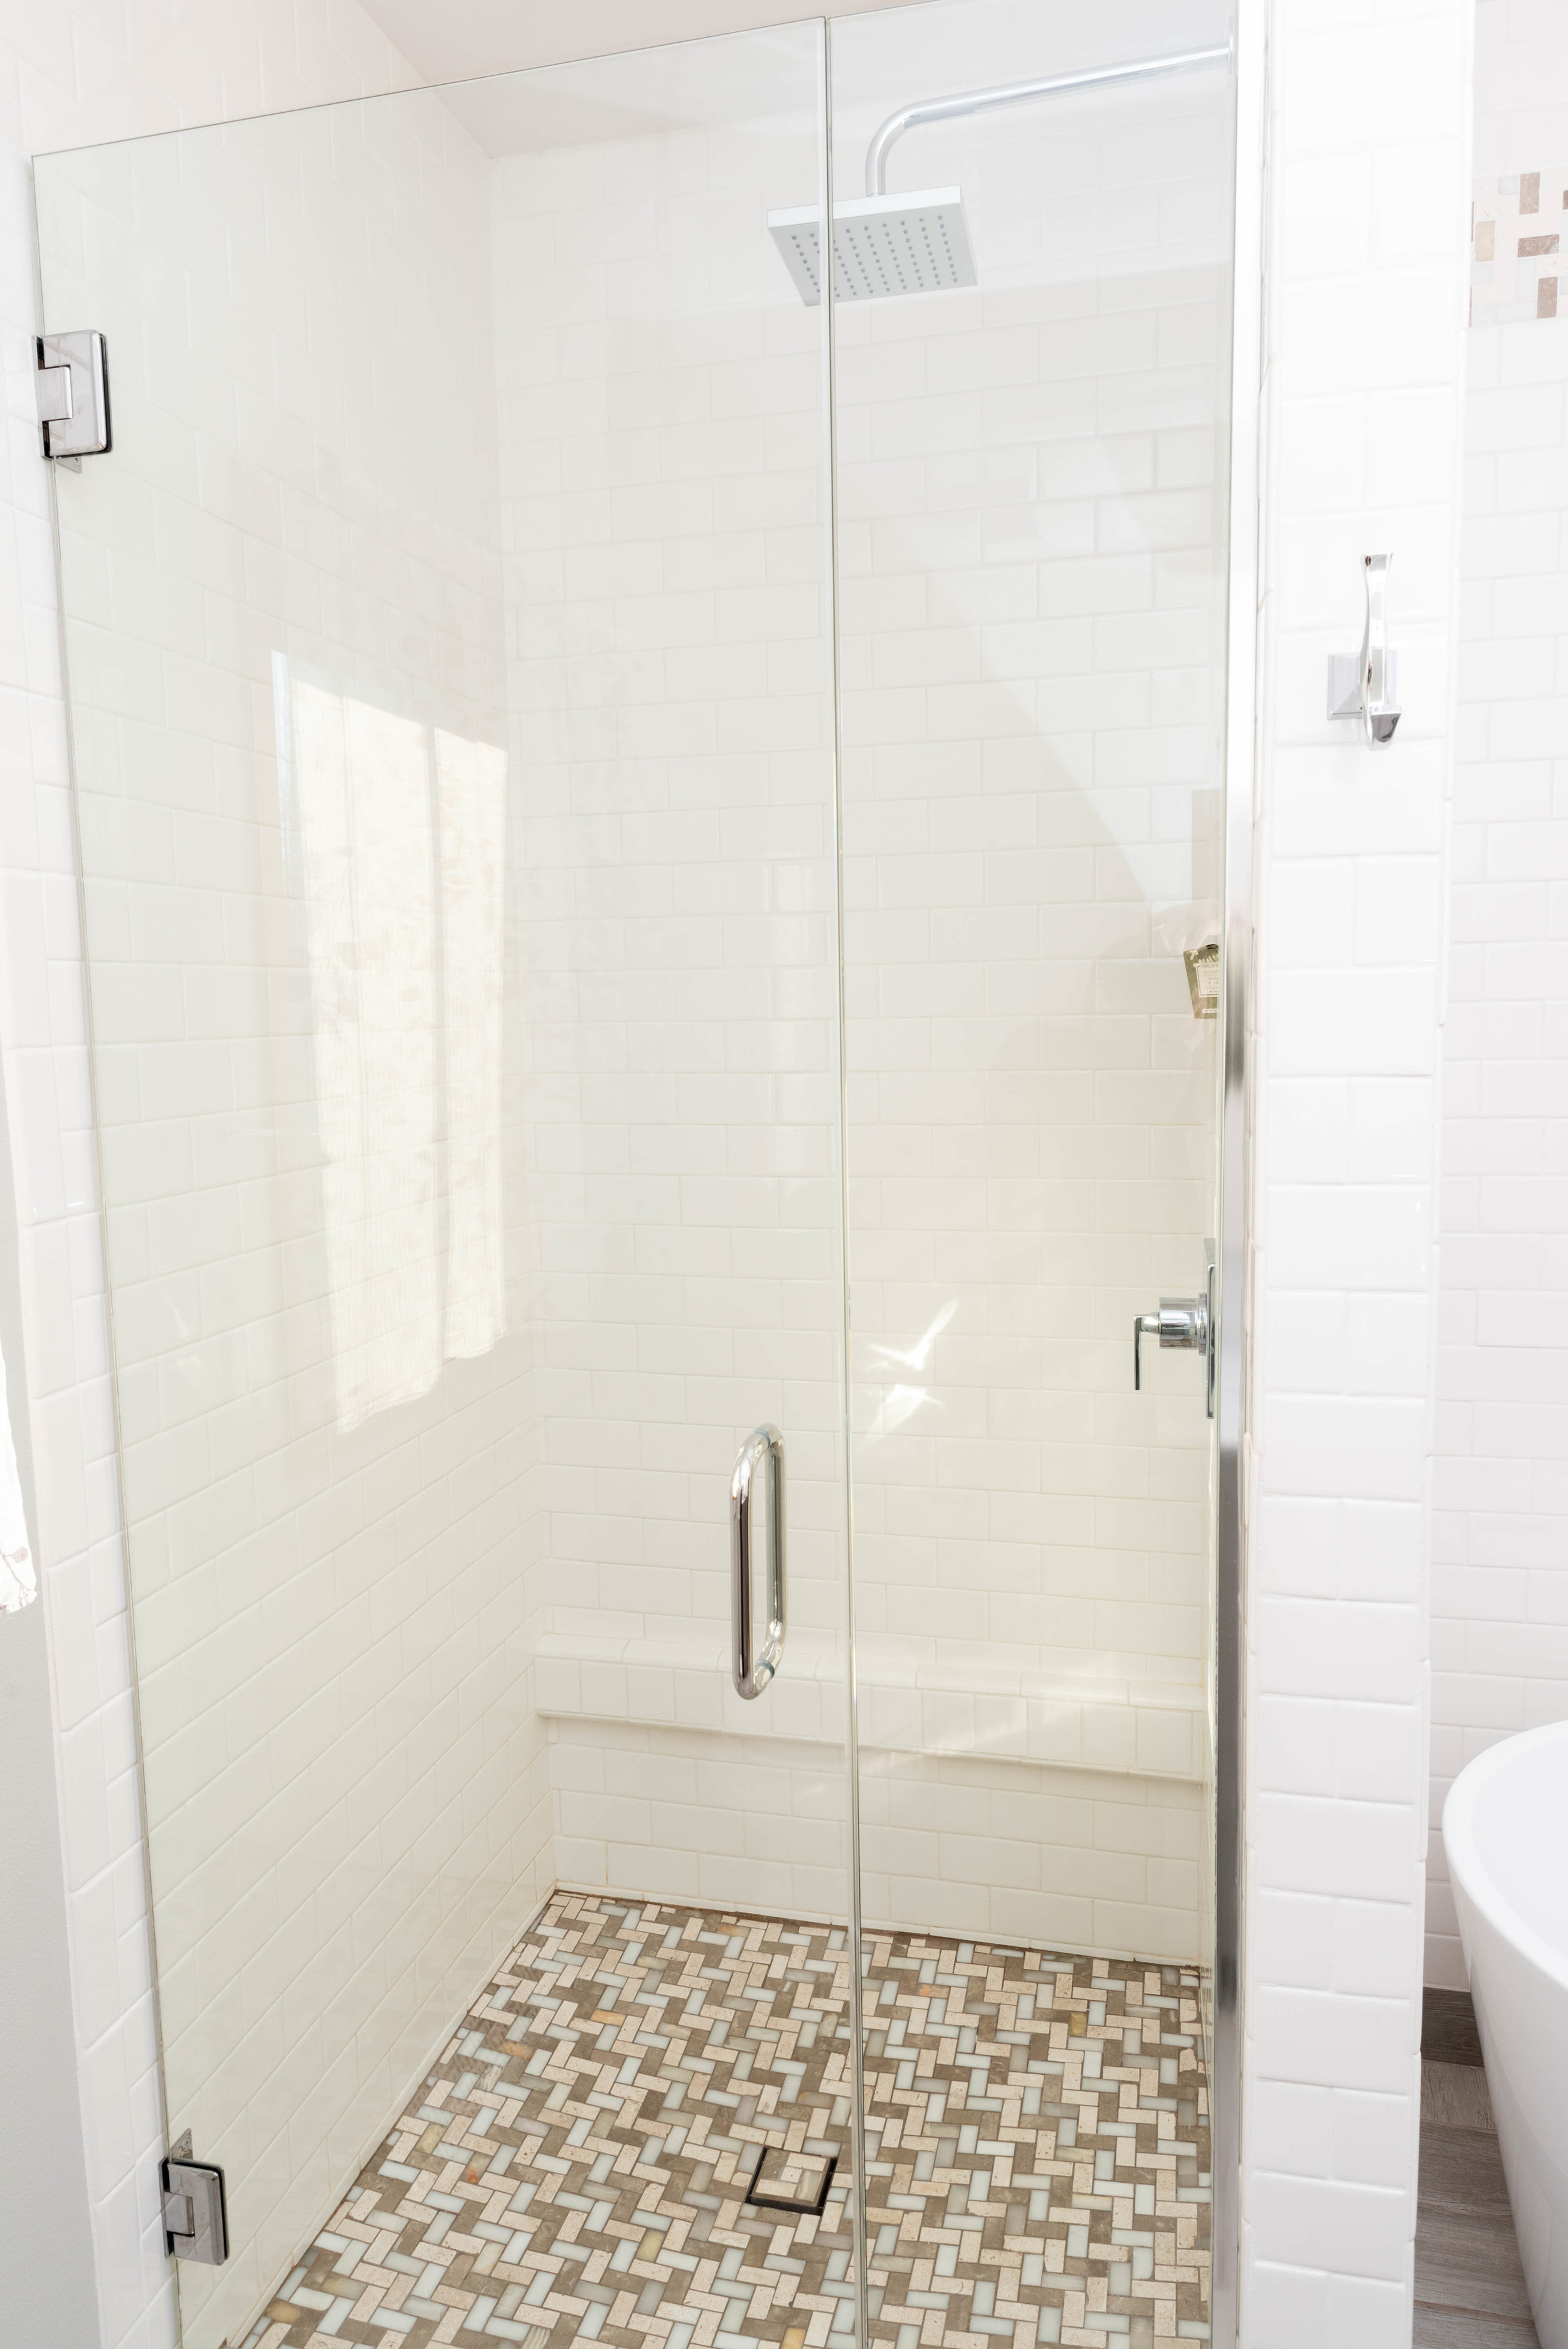 106 closed shower door.jpg